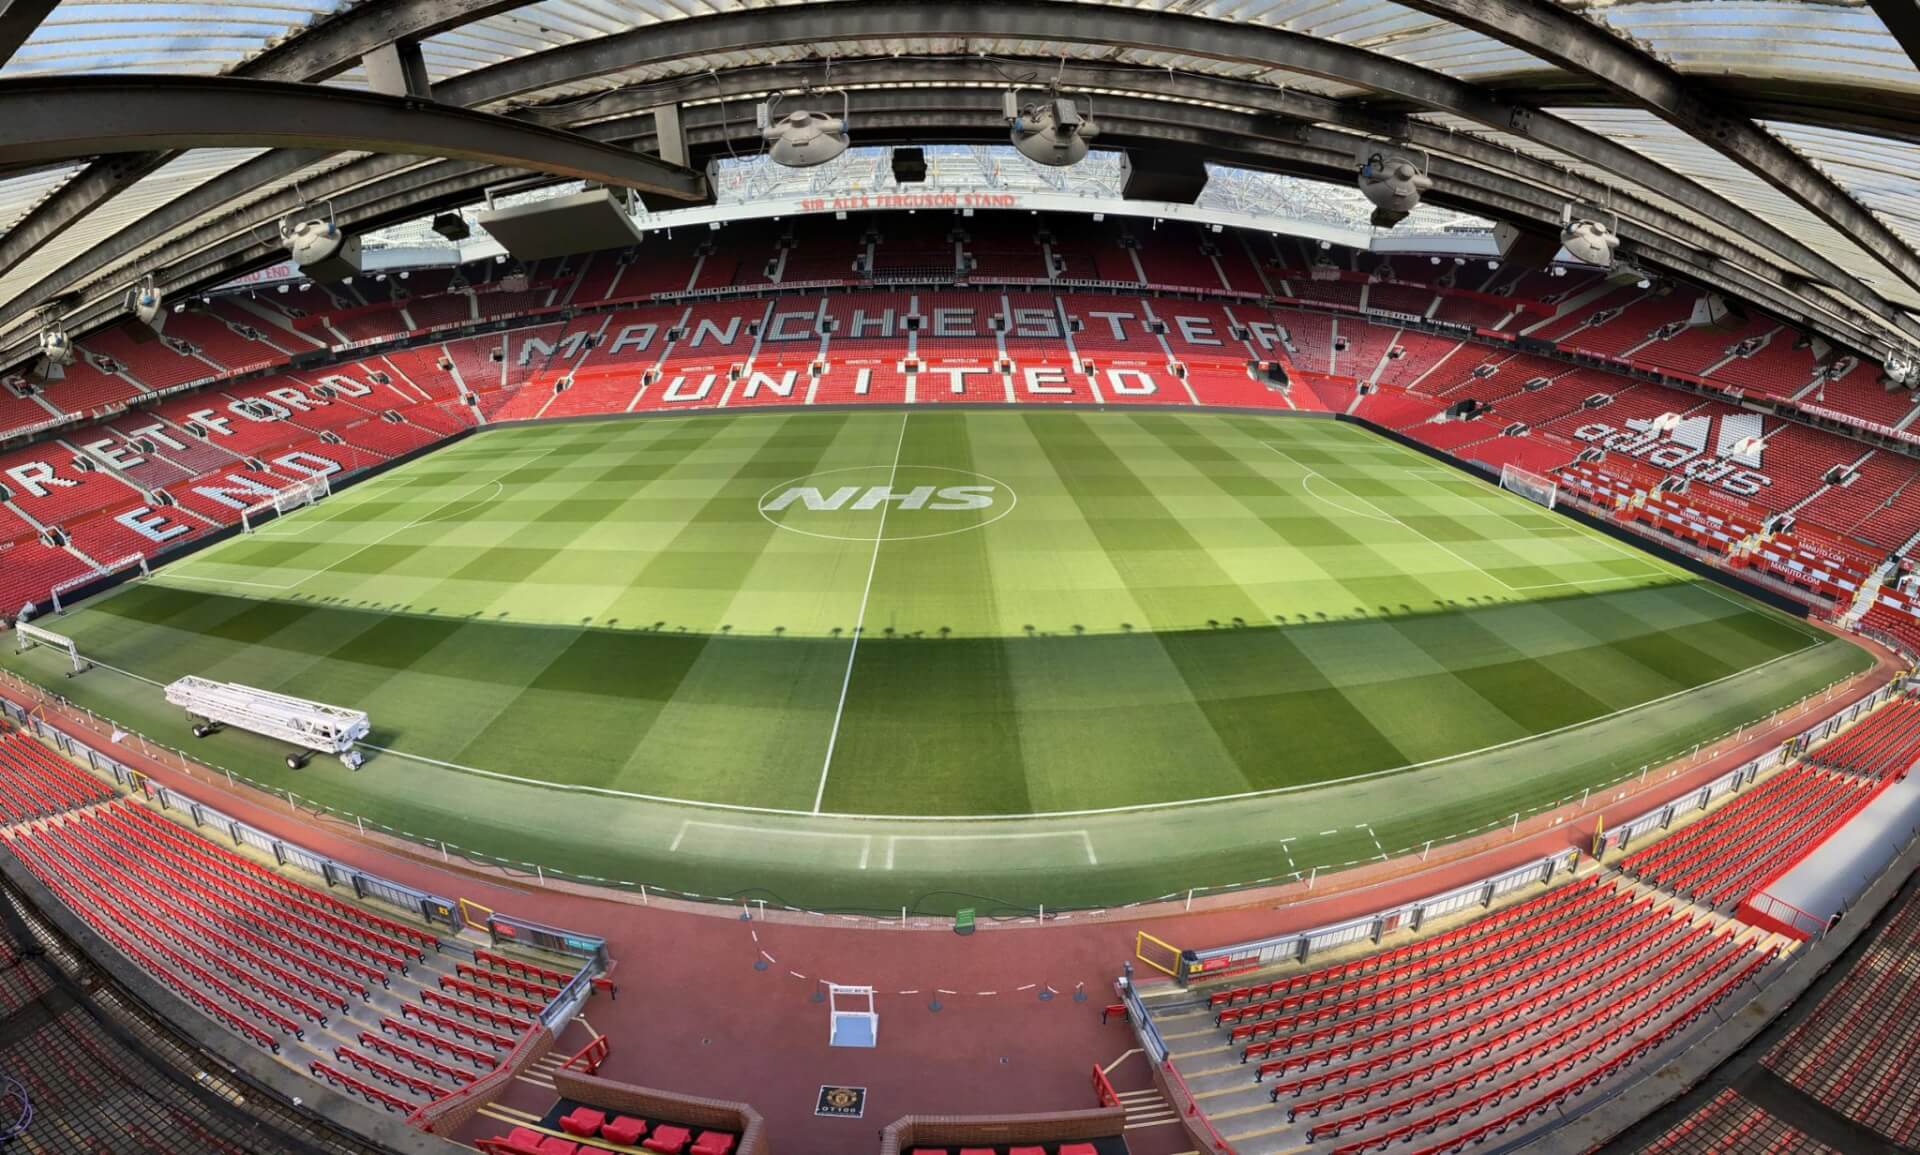 Logo marking for NHS at Old Trafford with Manchester United